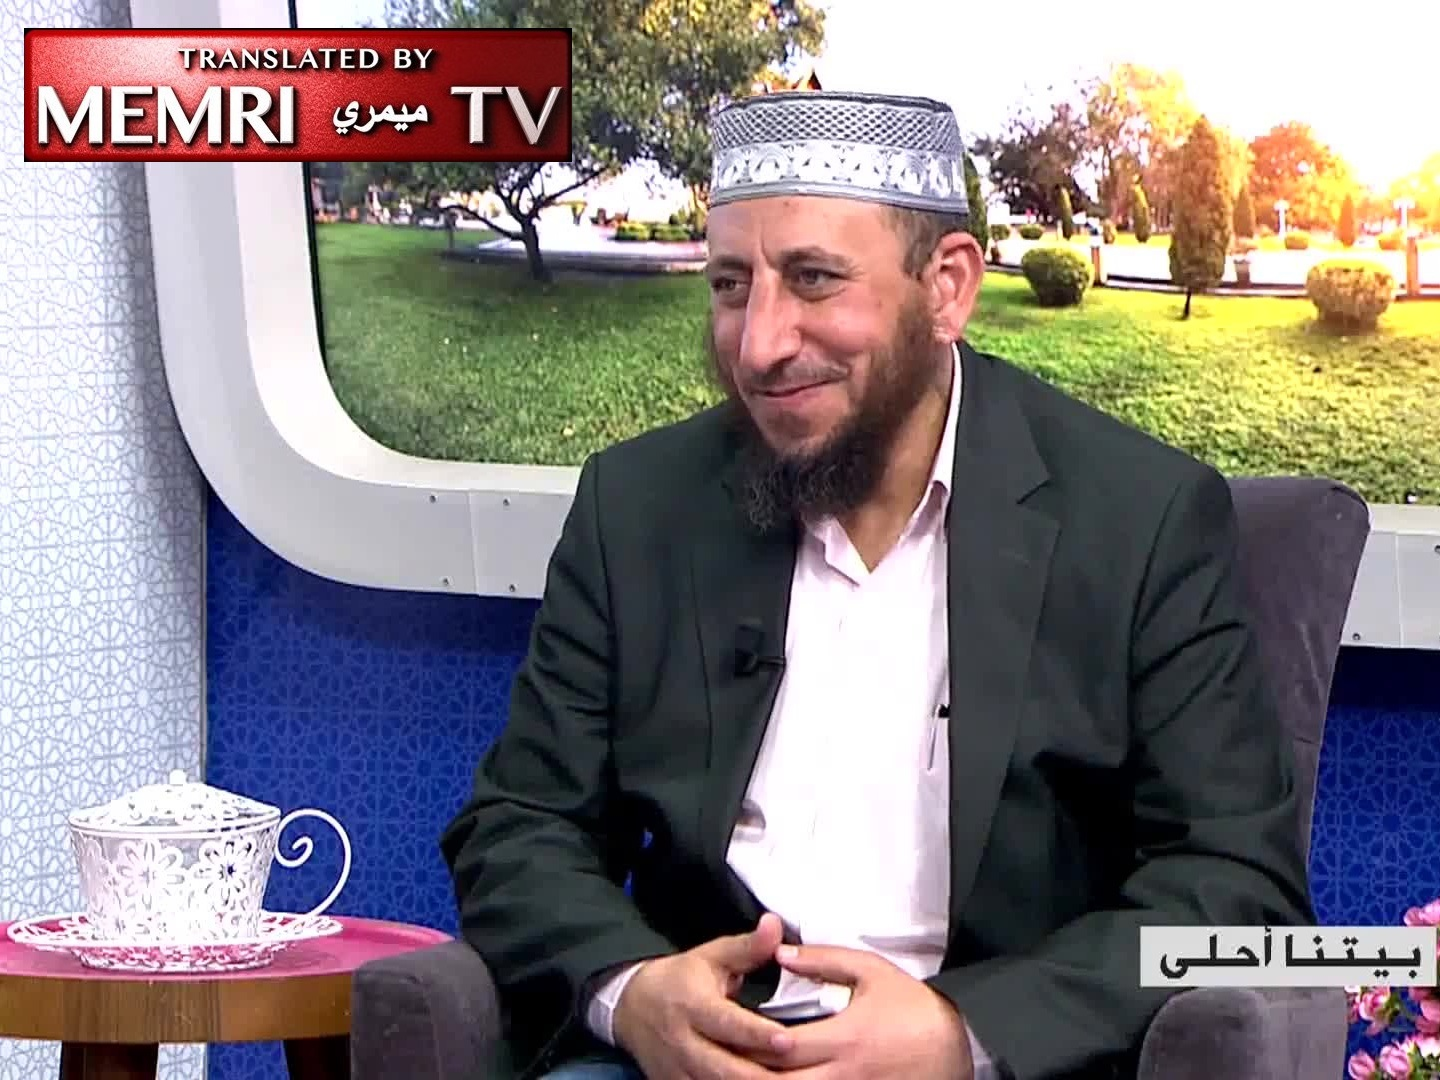 Egyptian Islamic Scholar Ayman Khamis: We Shall Take Al-Andalus Back from Spain Just Like We Shall Take Palestine Back from the Jews